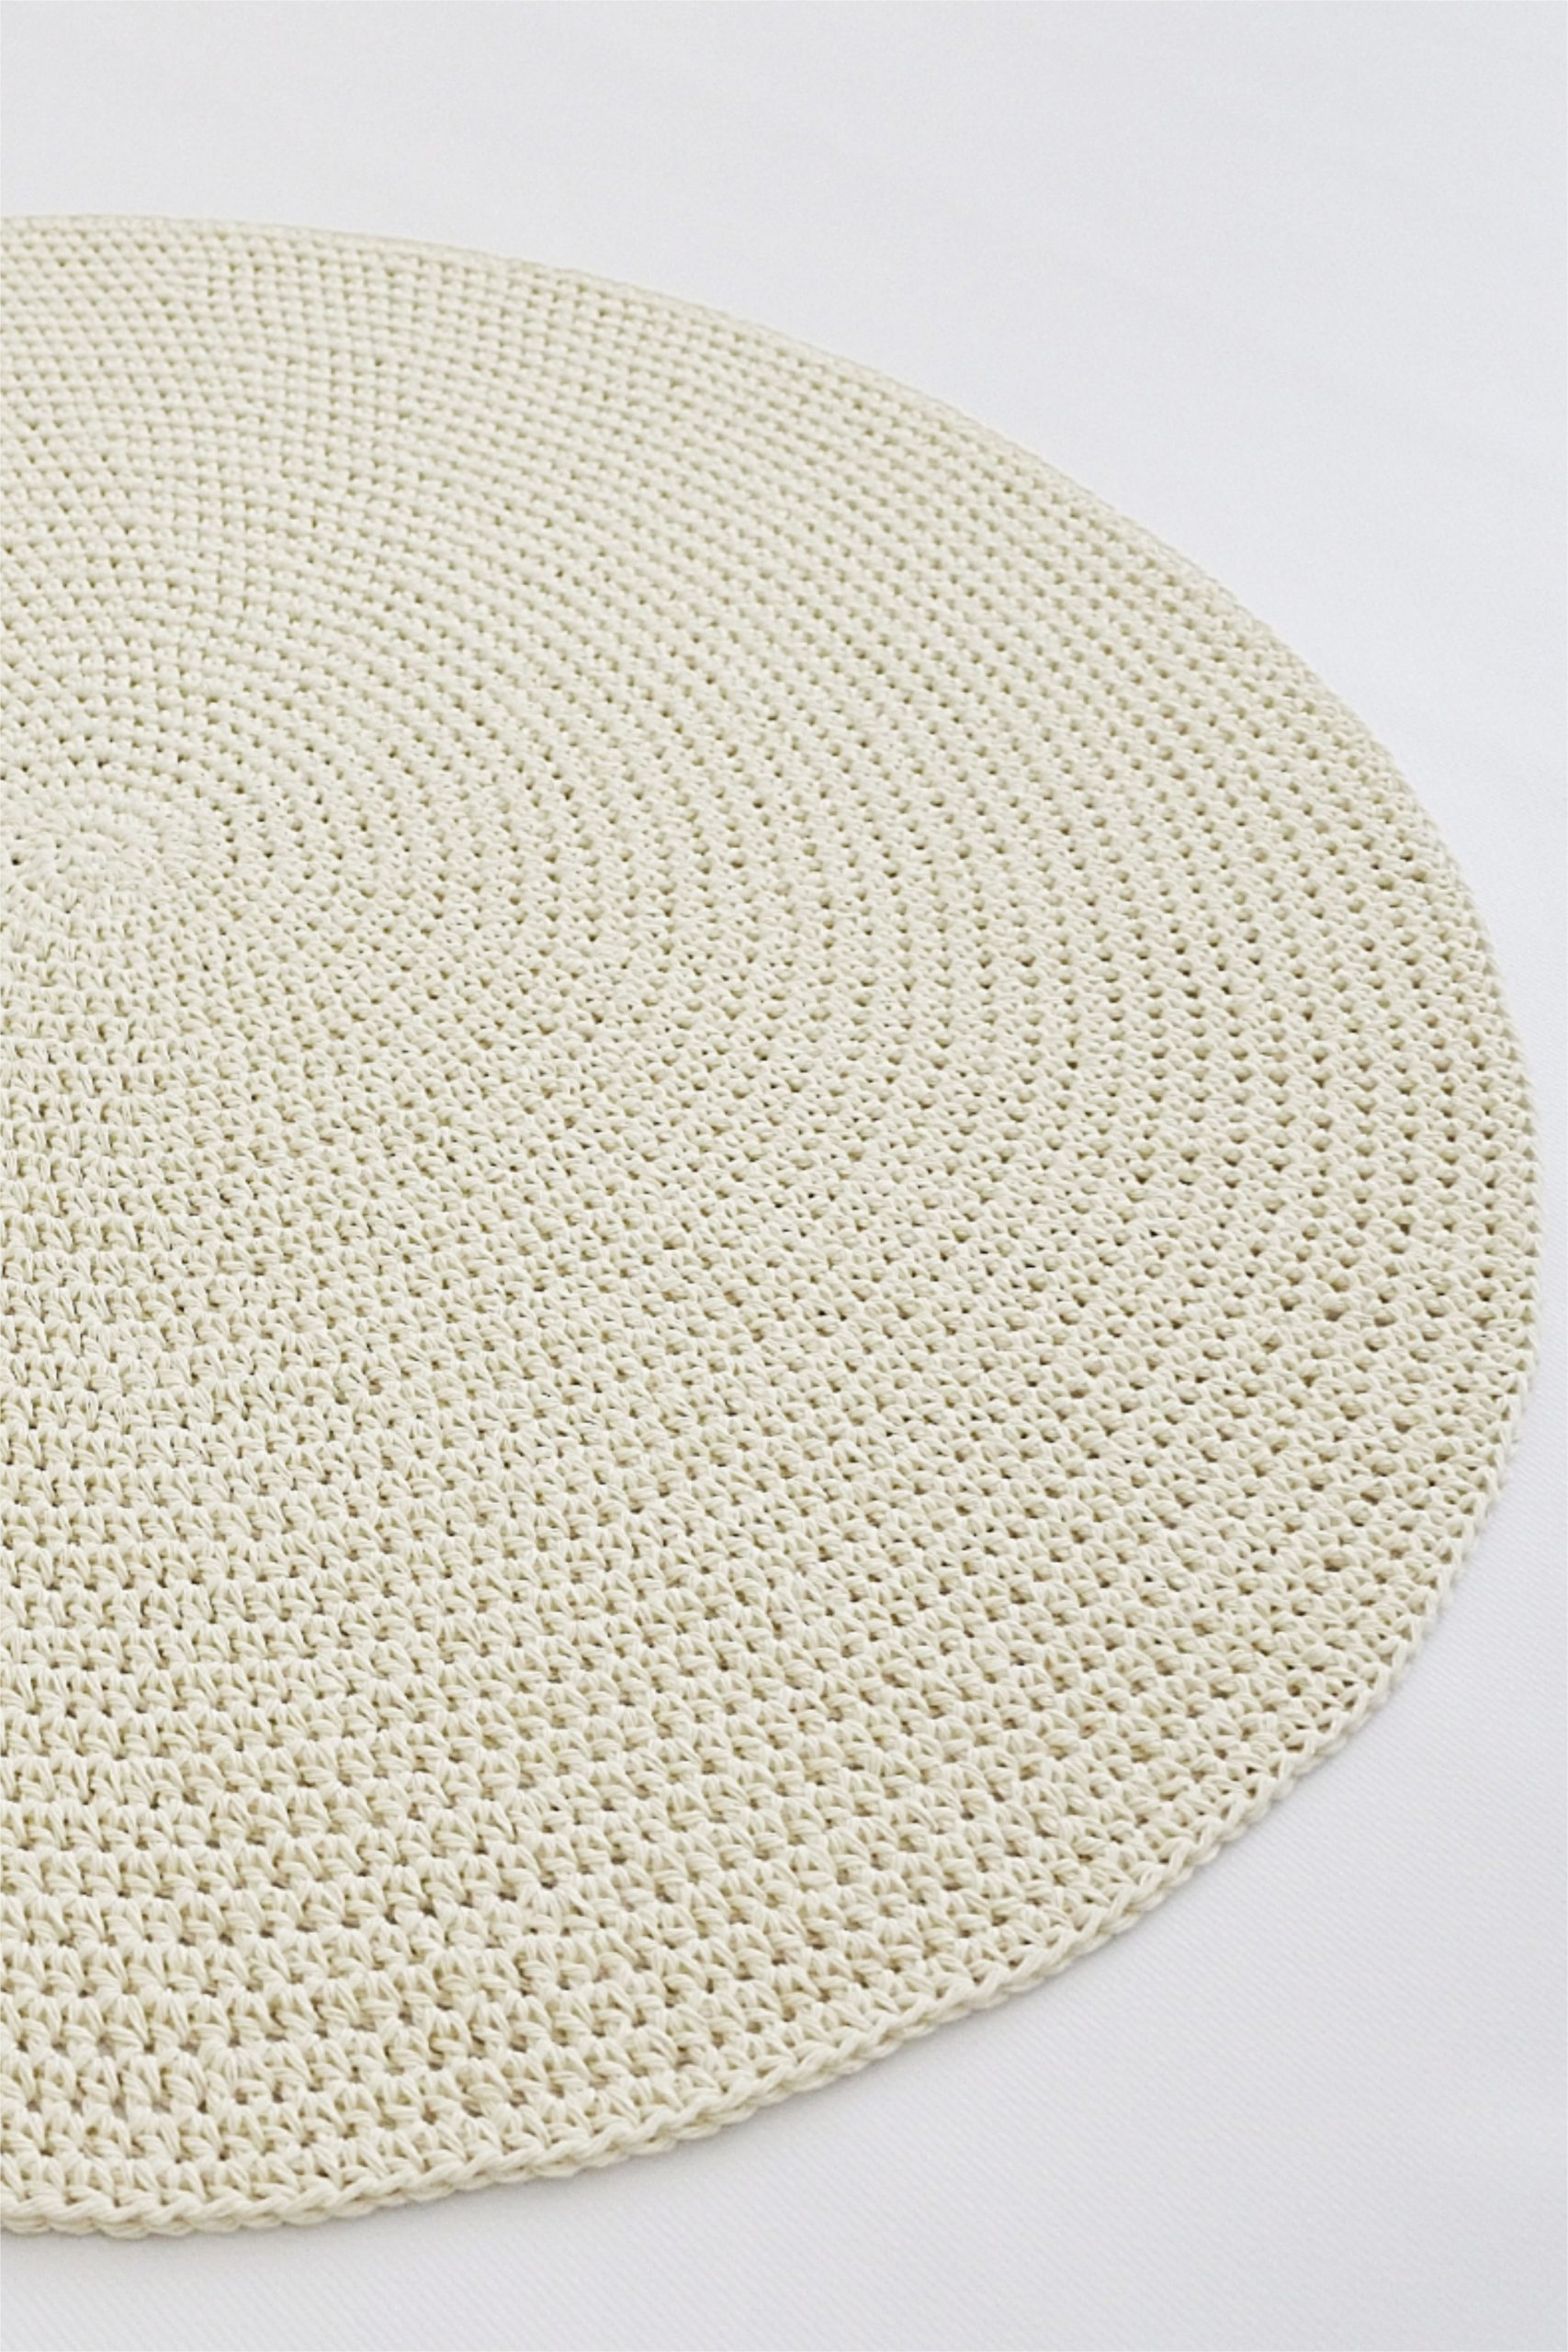 3 Round Bath Rug Round Bathroom Rug Bath Rug Bathroom Mat Bath Mat Round